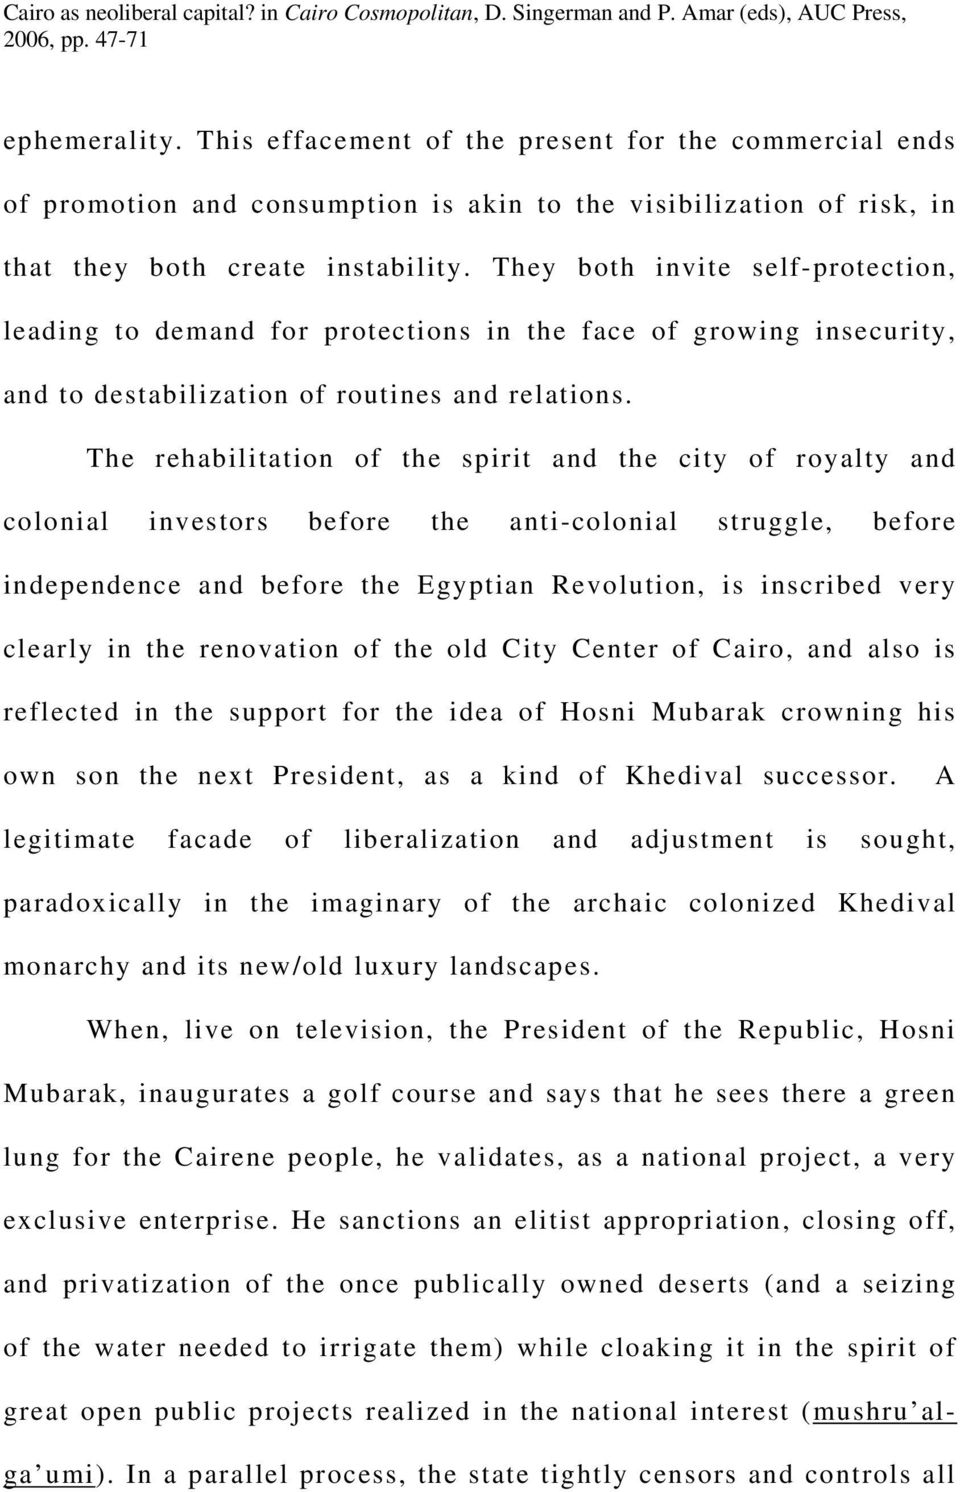 The rehabilitation of the spirit and the city of royalty and colonial investors before the anti-colonial struggle, before independence and before the Egyptian Revolution, is inscribed very clearly in